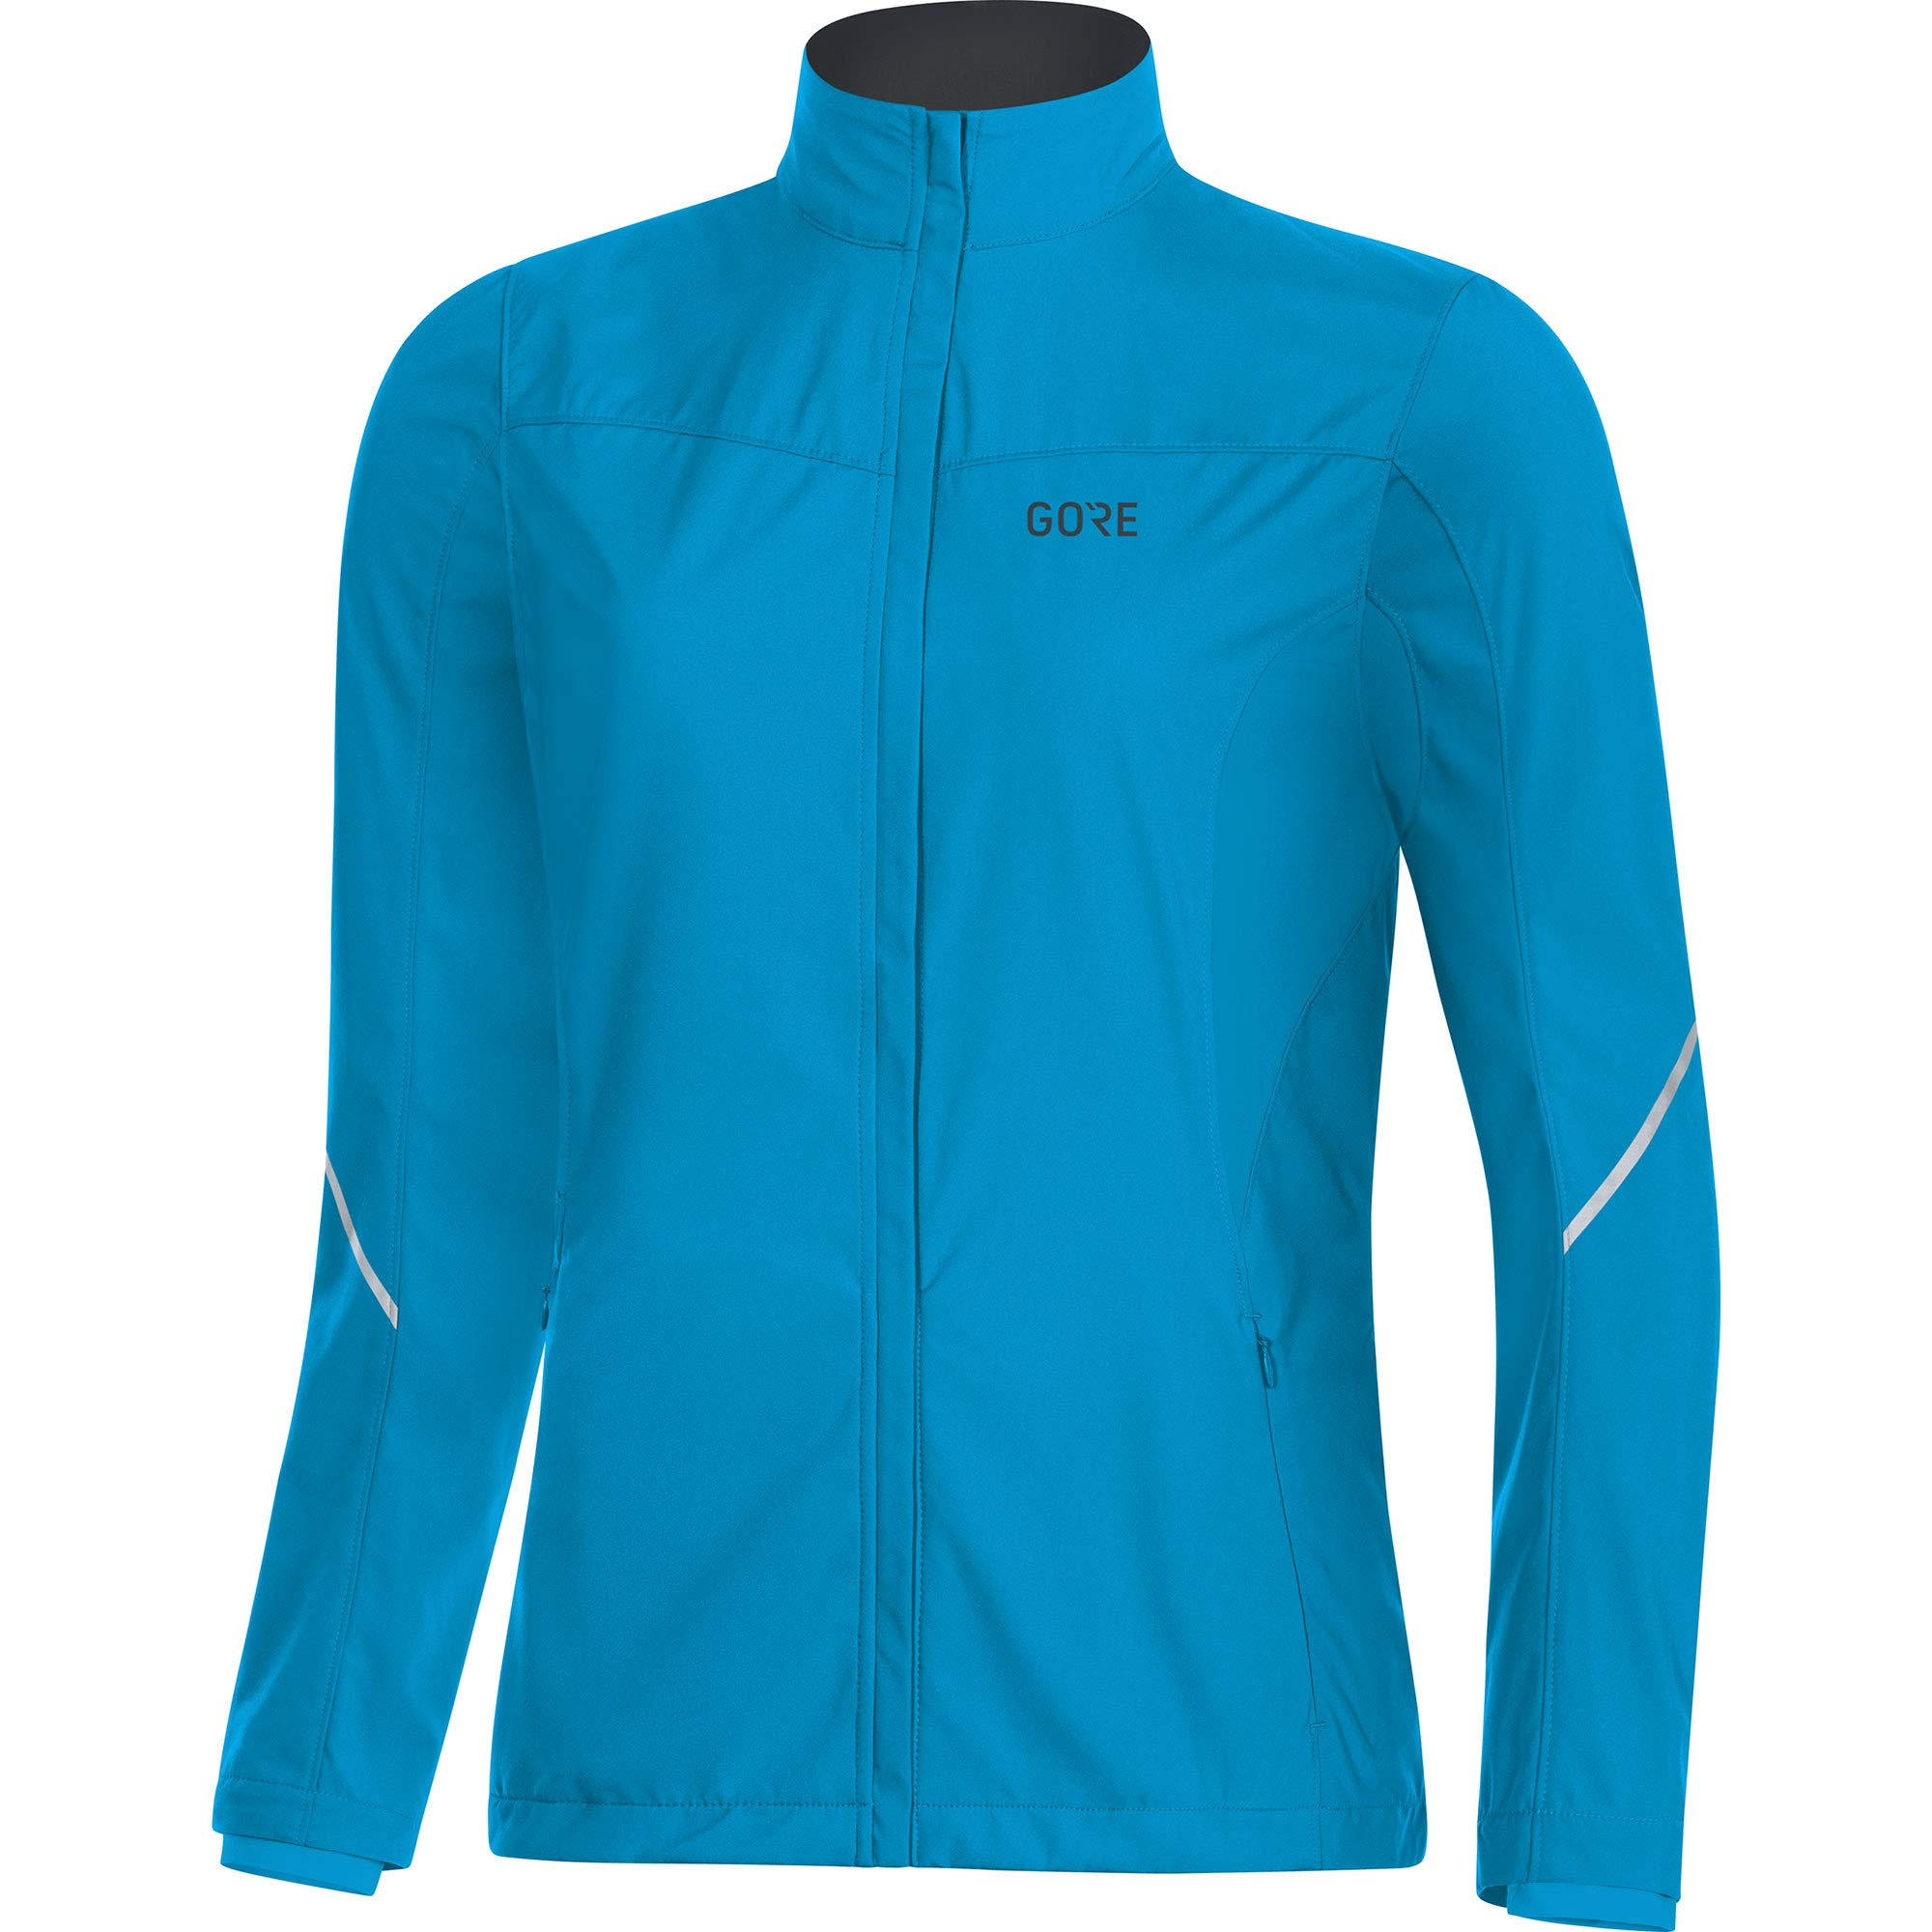 GORE Wear Women's Windproof Running Jacket, R3 Women's Partial WINDSTOPPER Jacket, Size: M, Color: Dynamic Cyan, 100081